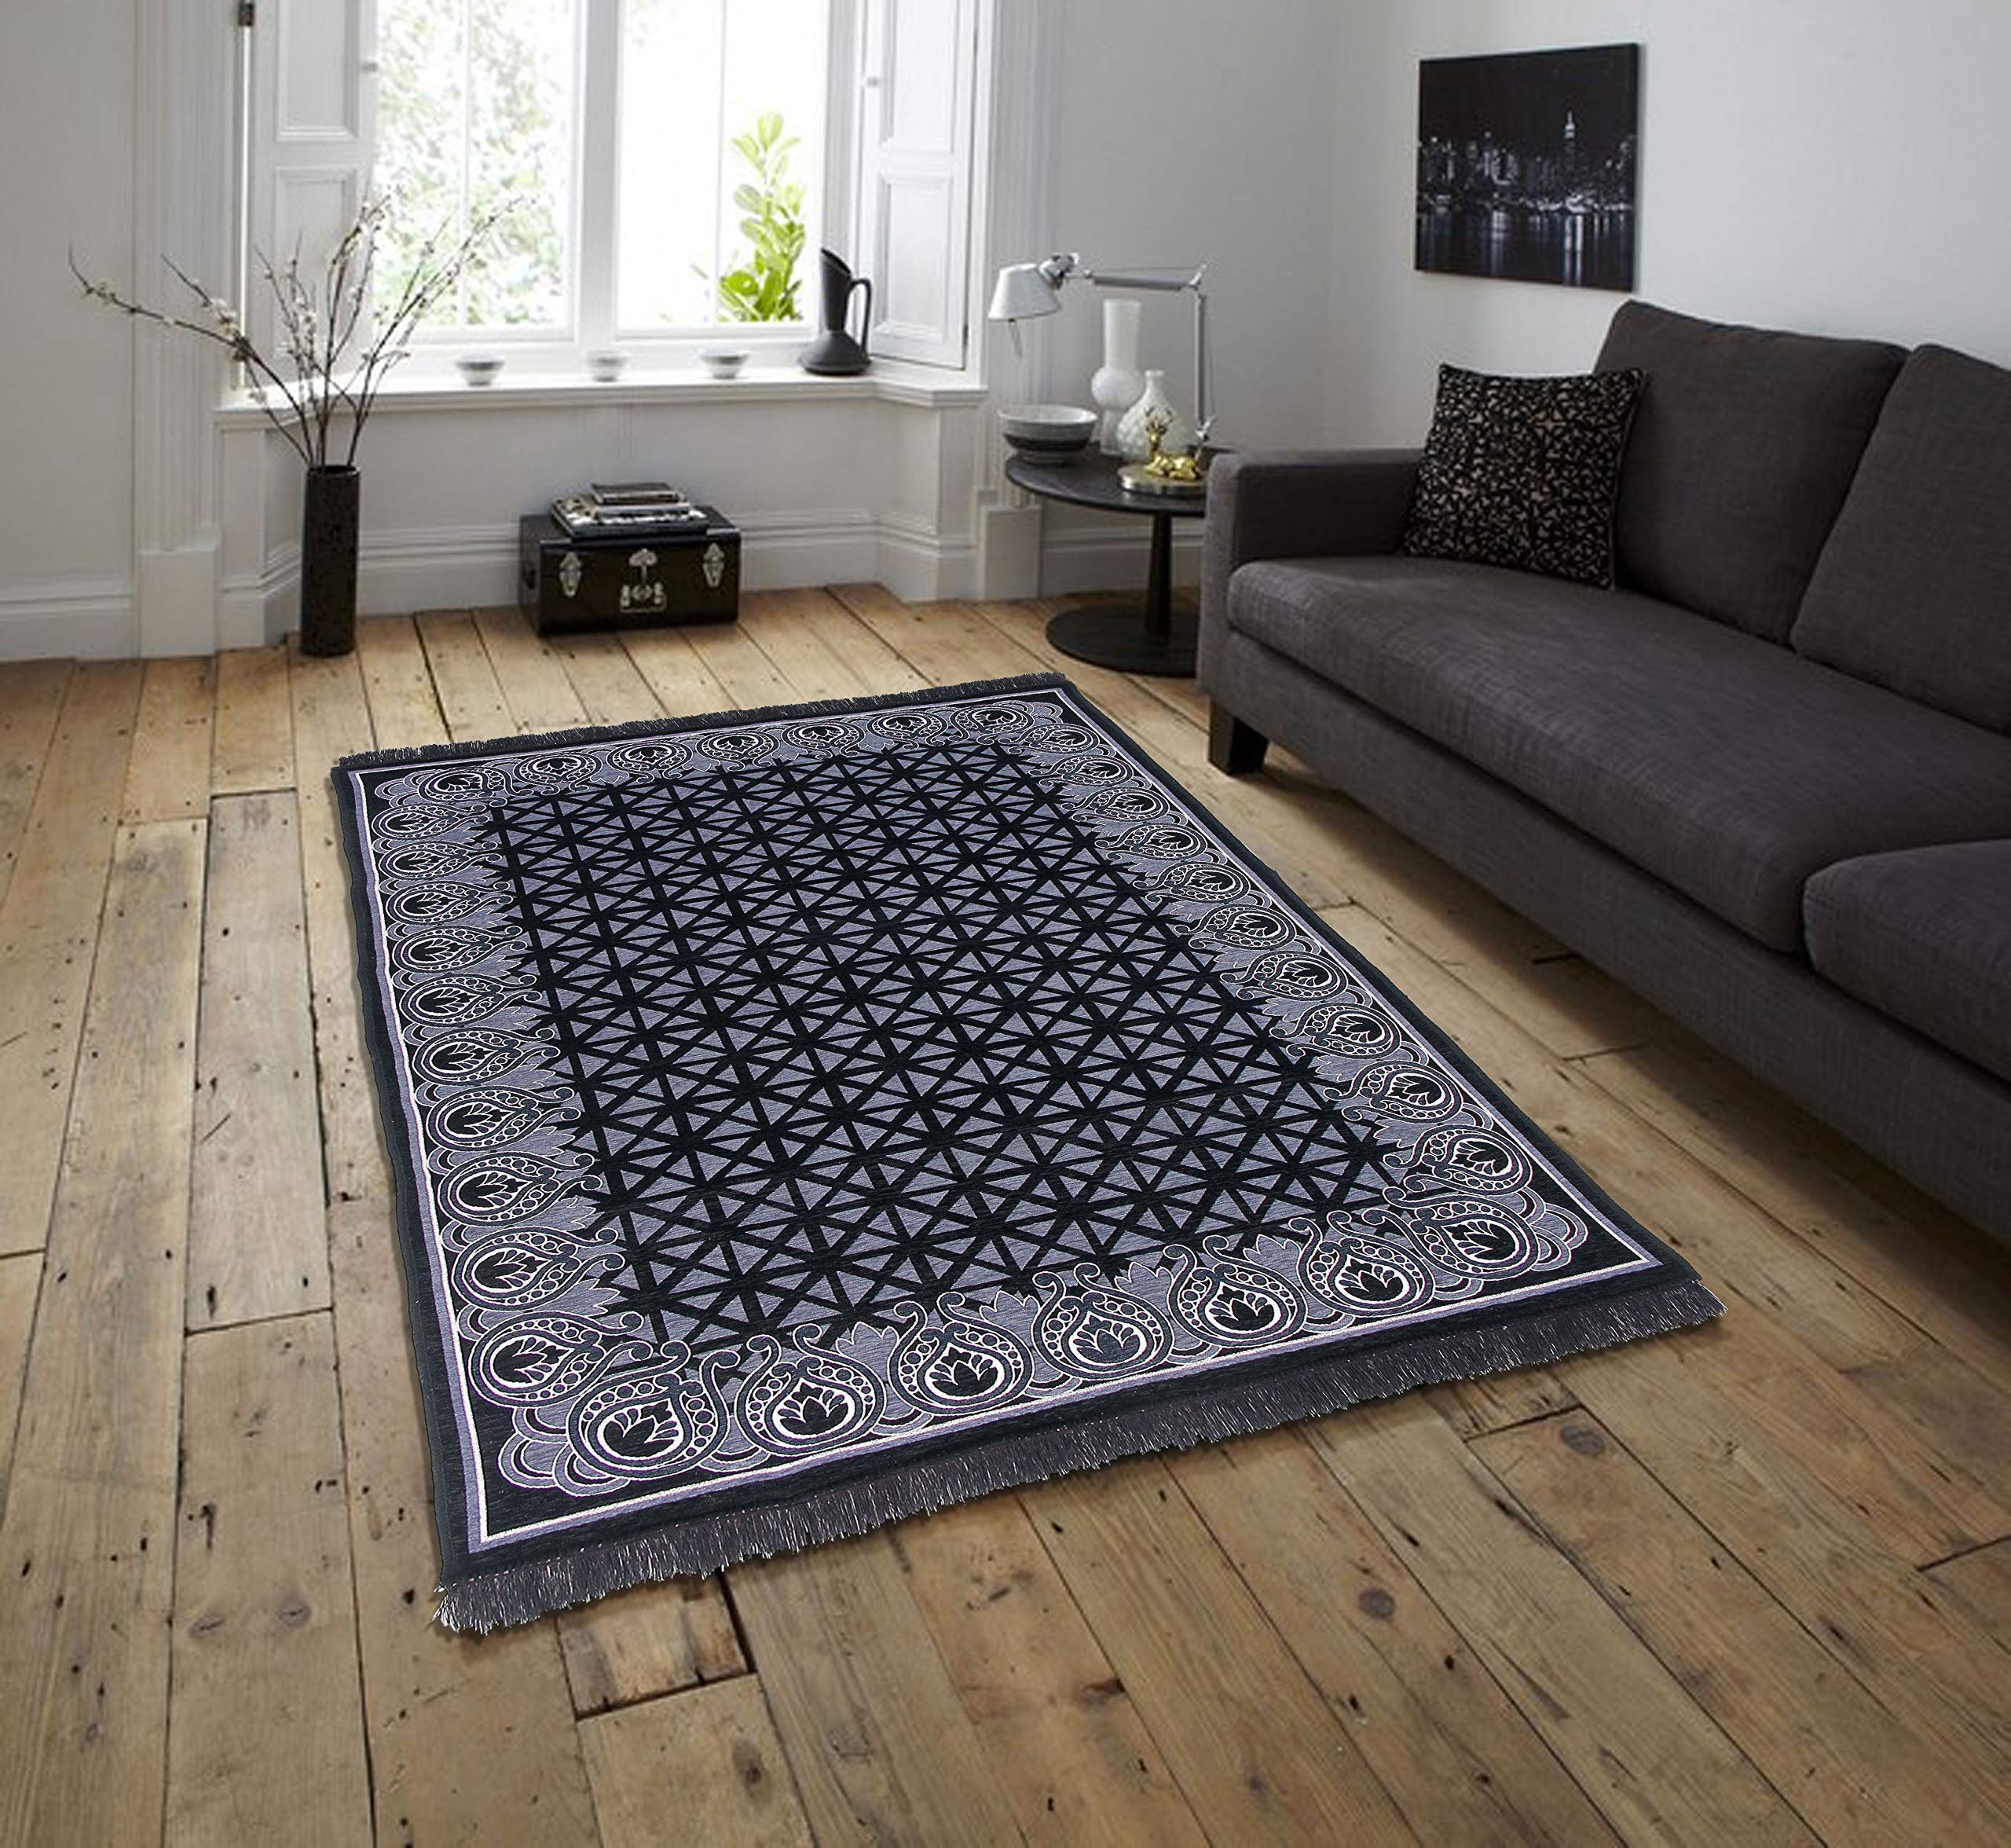 Braids Home Jacquard Weaved Multi Chennile Bedroom Living Room Rugs And Carpets 42 Buy Online In Guernsey At Guernsey Desertcart Com Productid 94132902